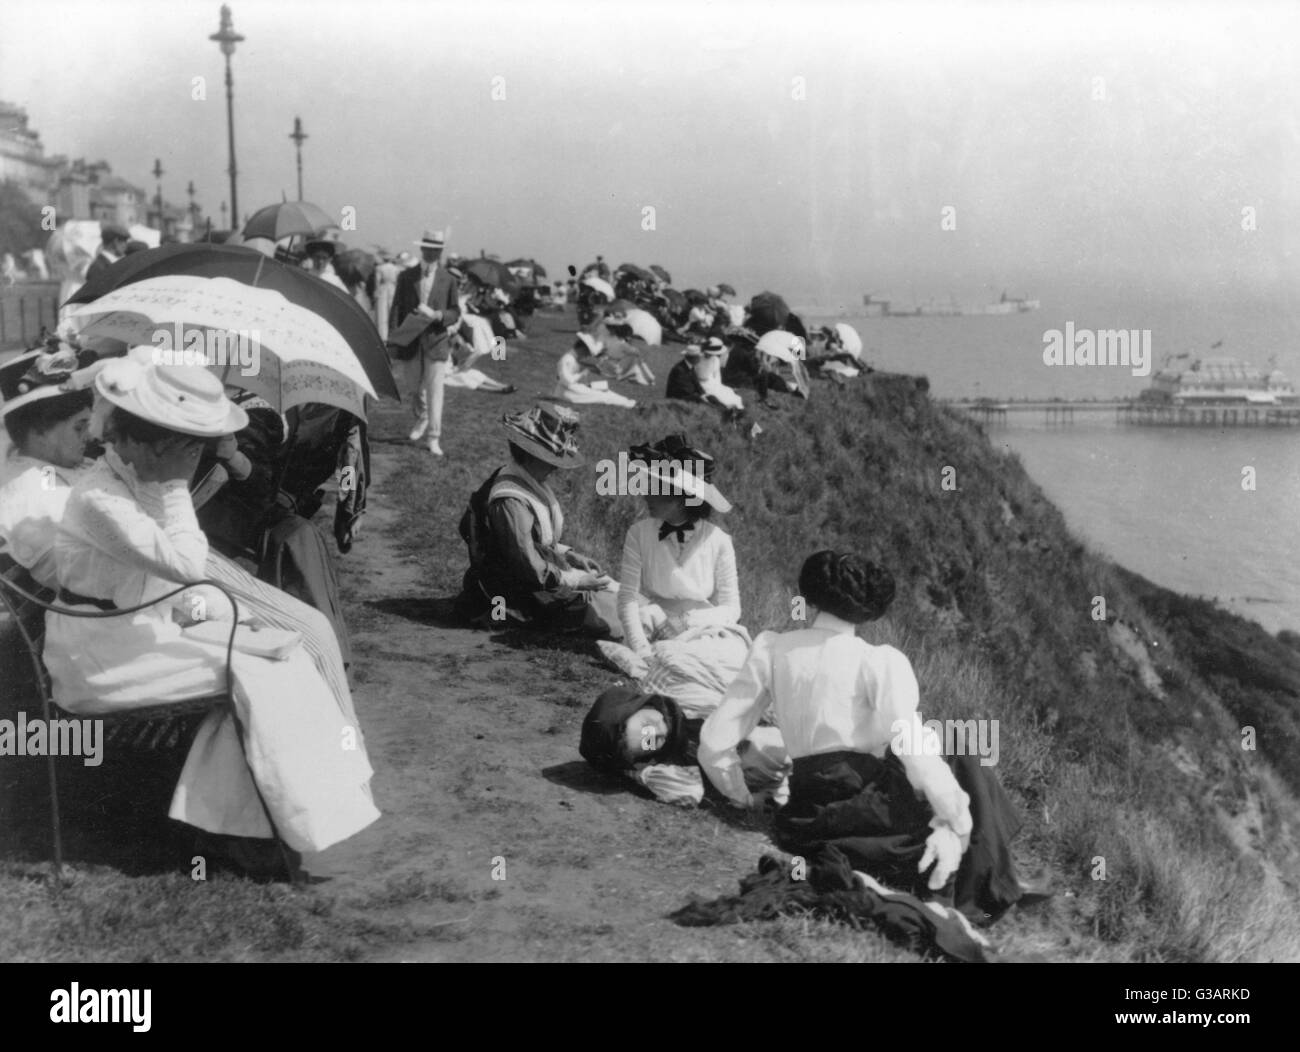 Edwardian holidaymakers on a cliff at a seaside resort.      Date: early 20th century - Stock Image